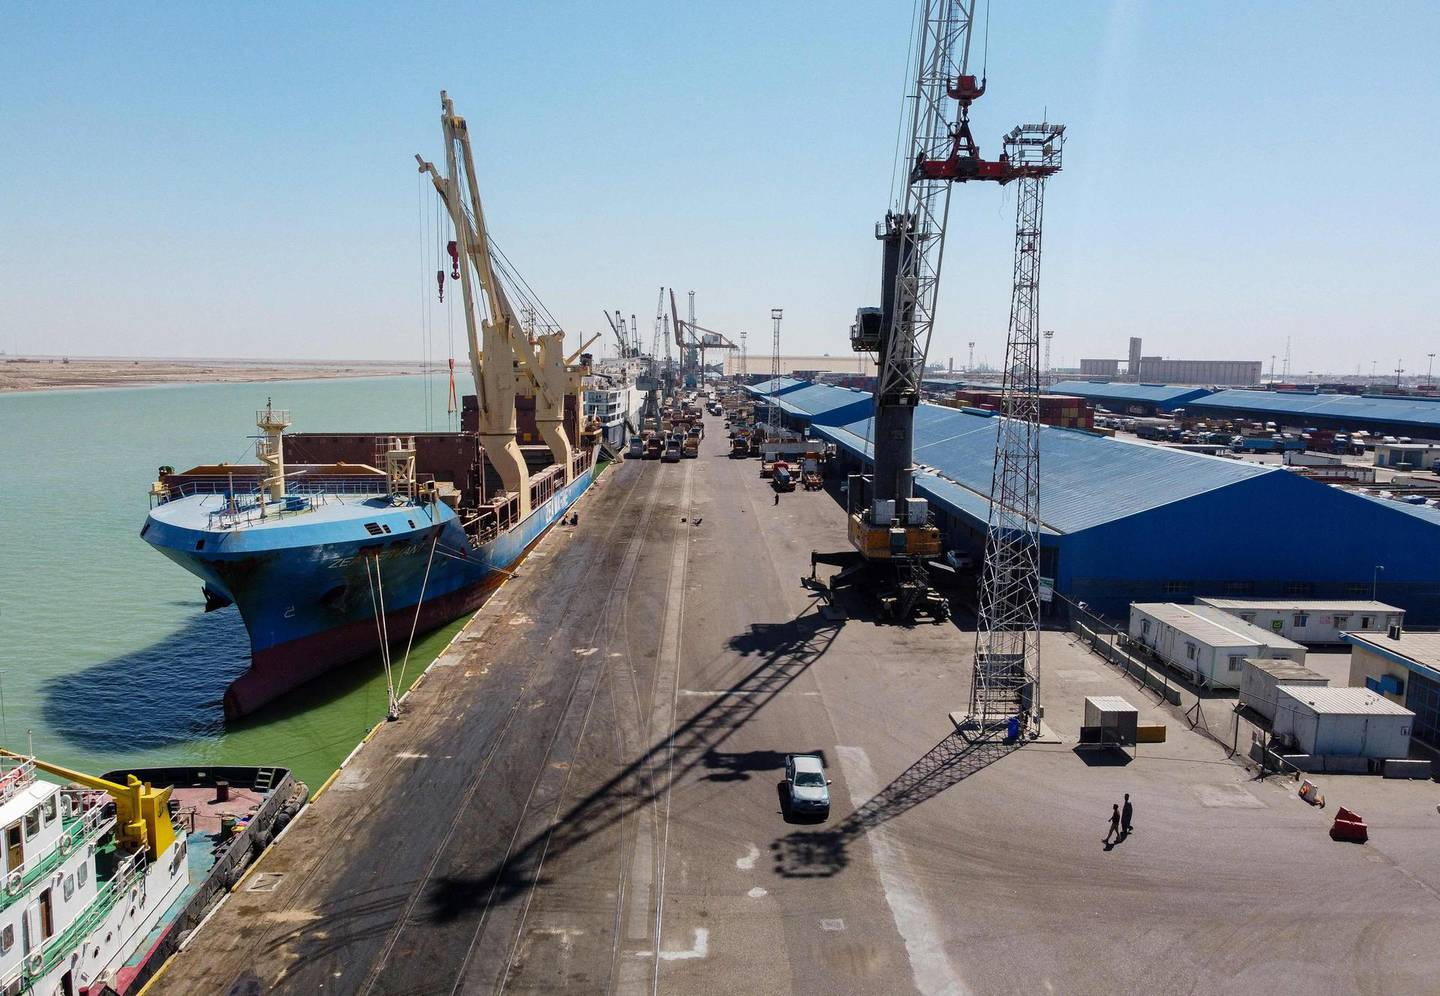 This picture taken on March 14, 2021 shows a view of the Hong Kong-flagged cargo vessel Zea Servant while moored at the port of Umm Qasr, south of Iraq's southern city of Basra. Iraq is ranked the 21st most corrupt country by Transparency International. In January, the advocacy group said public corruption had deprived Iraqis of basic rights and services, including water, health care, electricity and jobs. It said systemic graft was eating away at Iraqis' hopes for the future, pushing growing numbers to try to emigrate. In 2019, hundreds of thousands of protesters flooded Iraqi cities, first railing against poor public services, then explicitly accusing politicians of plundering resources meant for the people. / AFP / Hussein FALEH